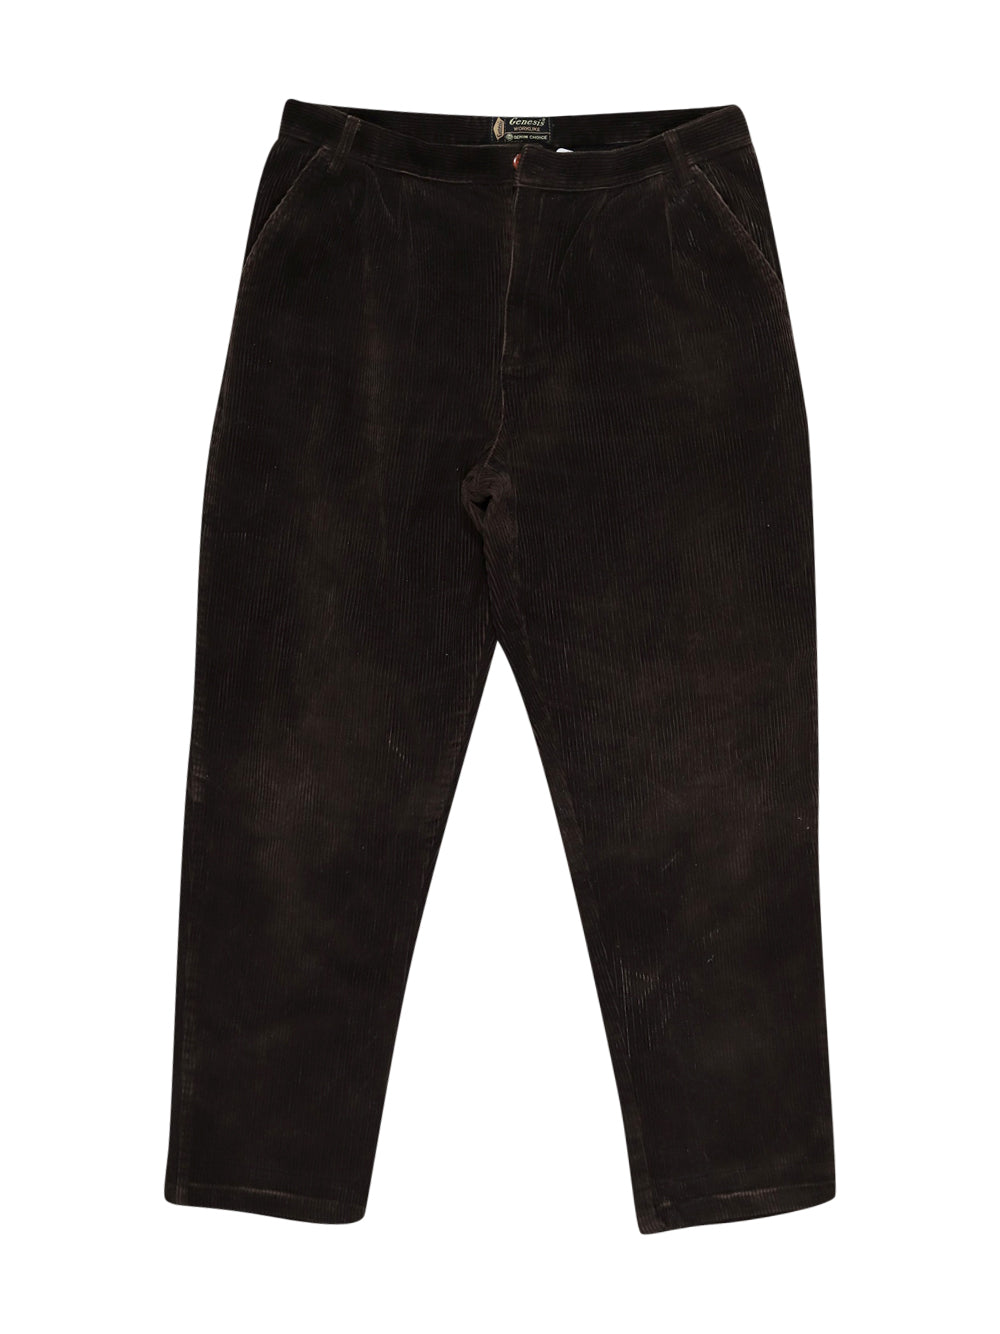 Front photo of Preloved Genesis Brown Man's trousers - size 38/M